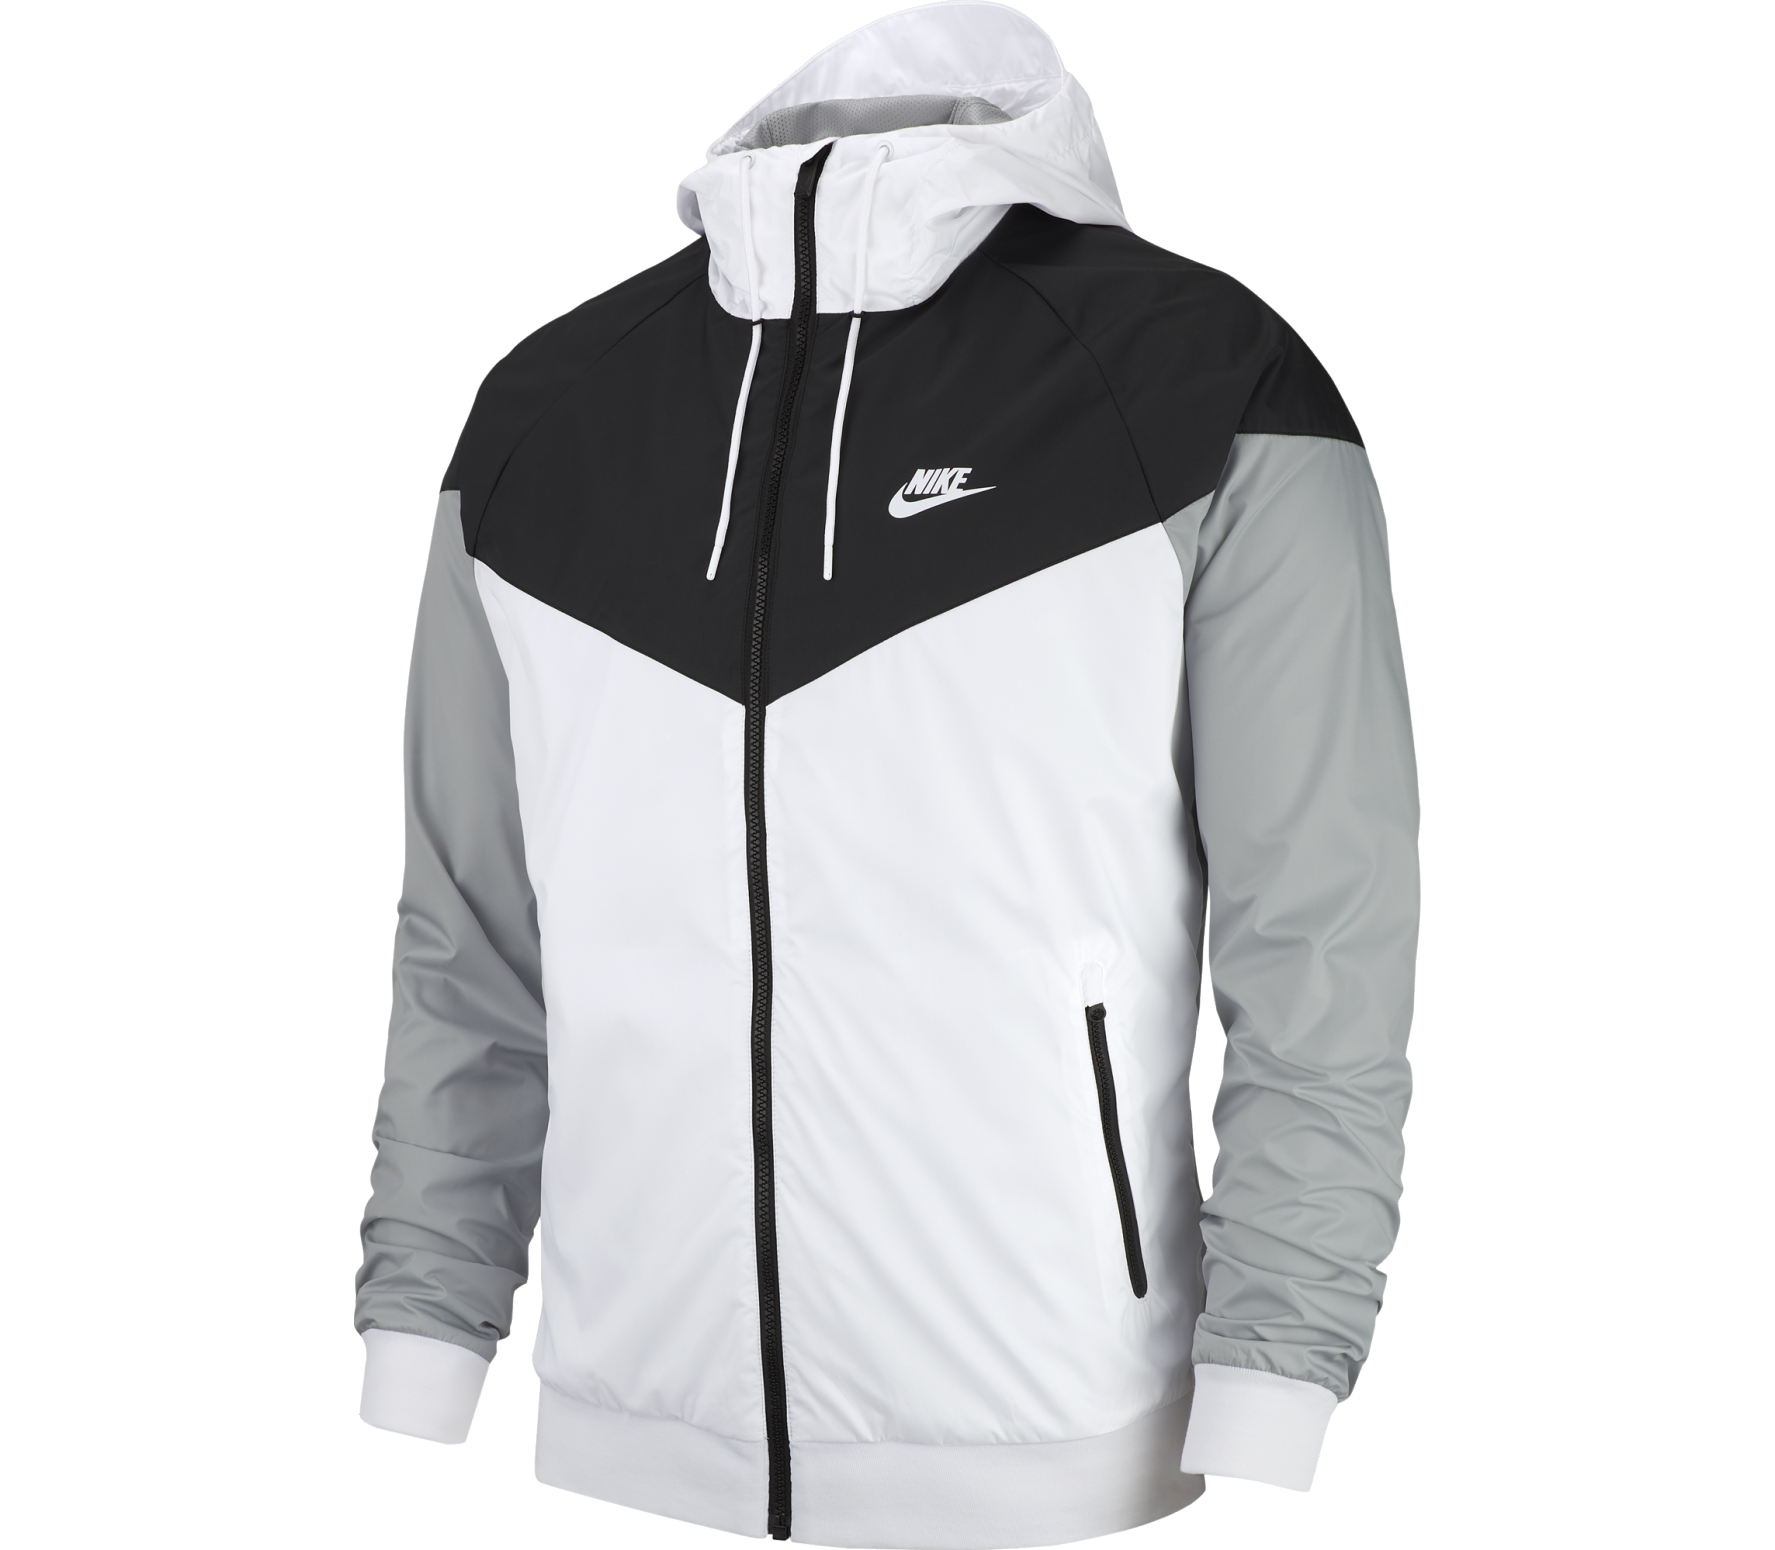 4014f8f244 Nike Sportswear - Windrunner men s jacket (white grey) - buy it at ...